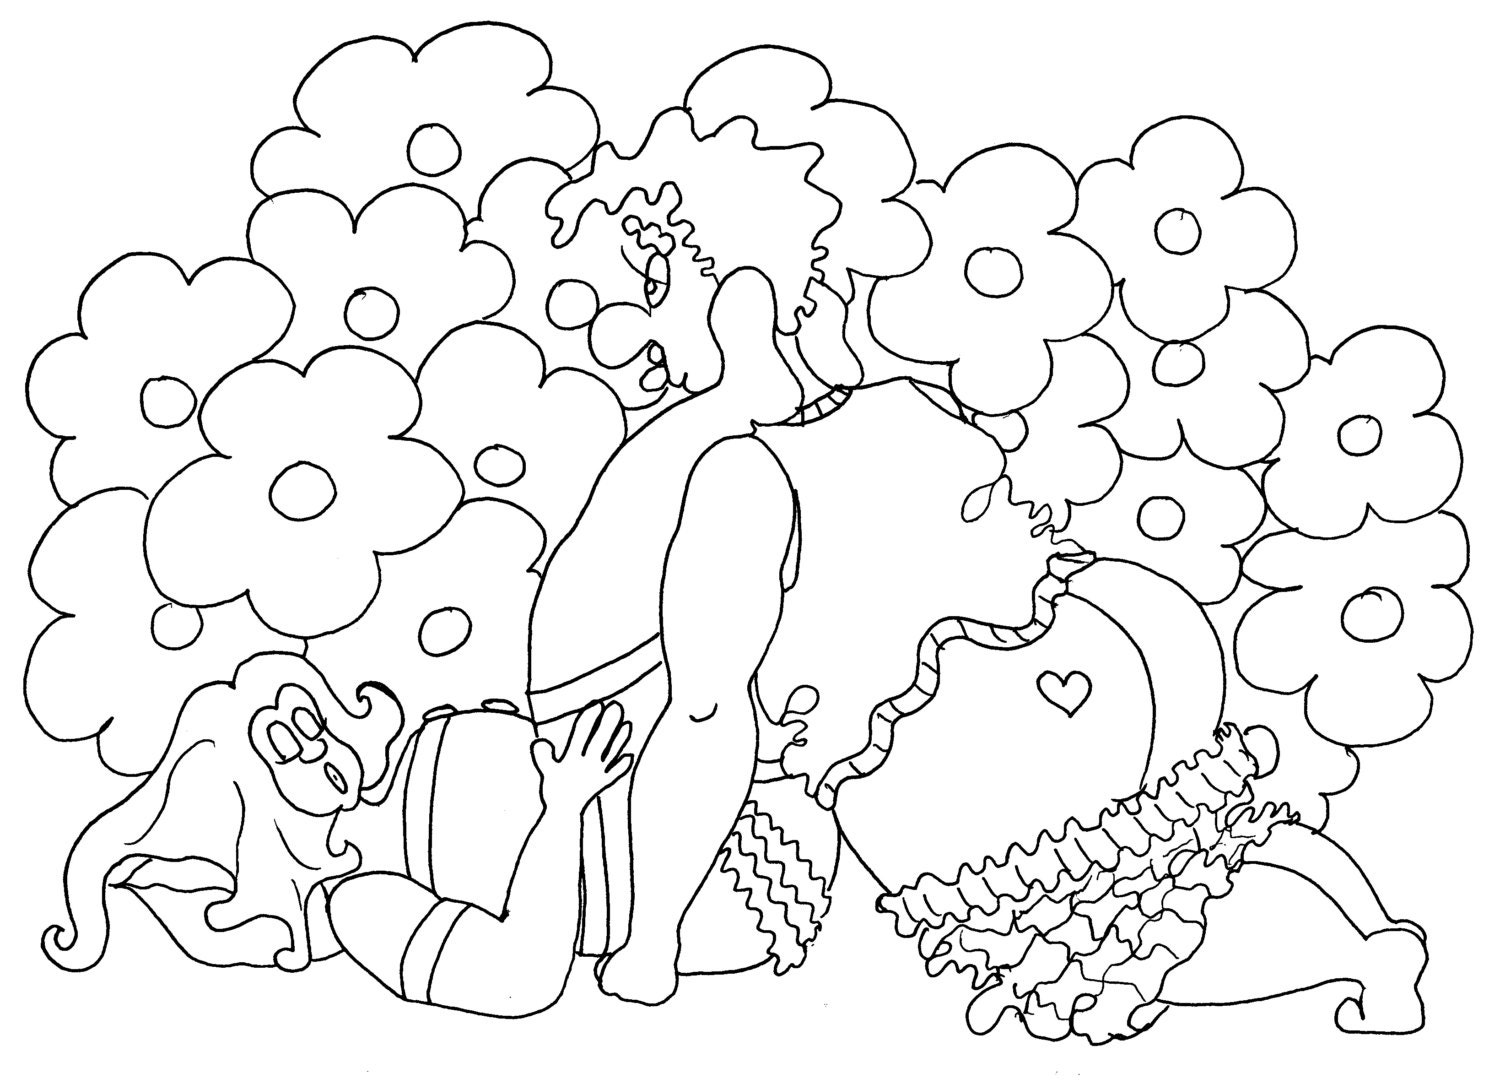 the snail kama sutra pose coloring pages from the